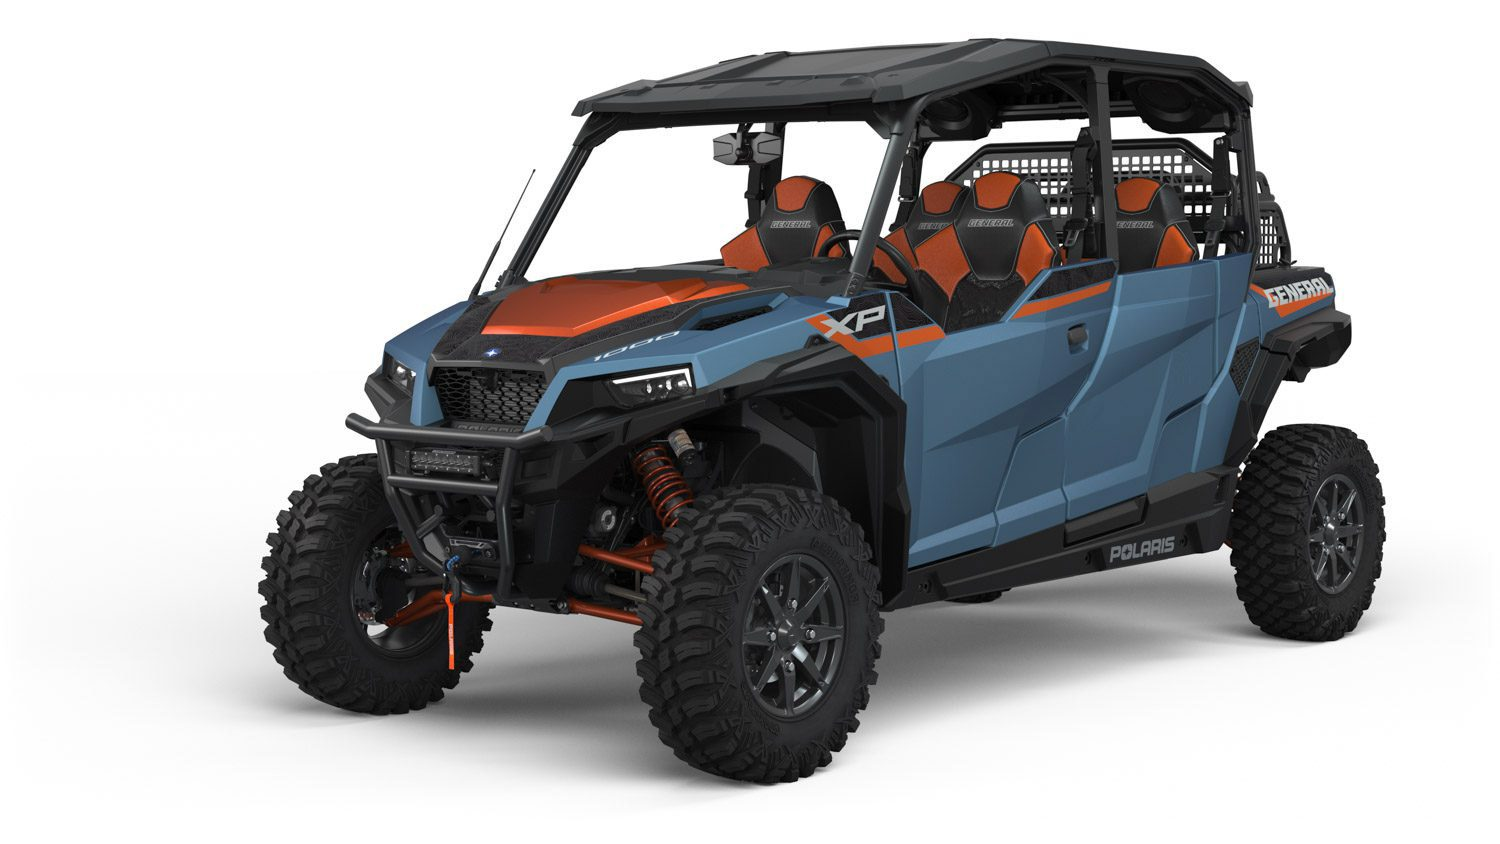 Polaris New Additions & Enhancements Across Entire Lineup